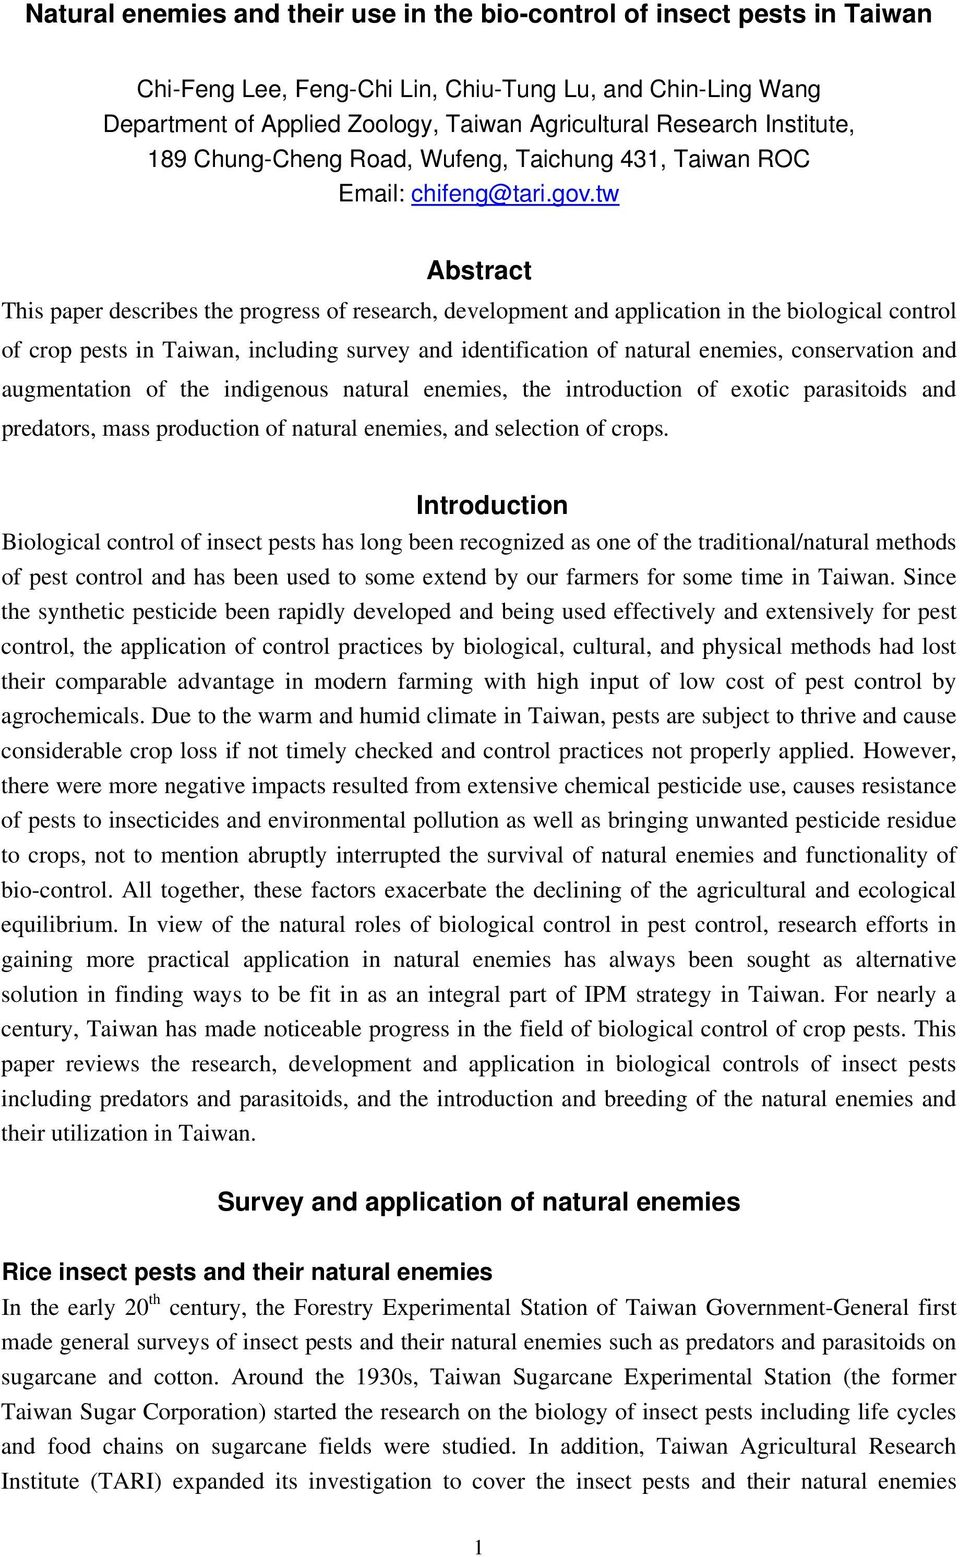 tw Abstract This paper describes the progress of research, development and application in the biological control of crop pests in Taiwan, including survey and identification of natural enemies,